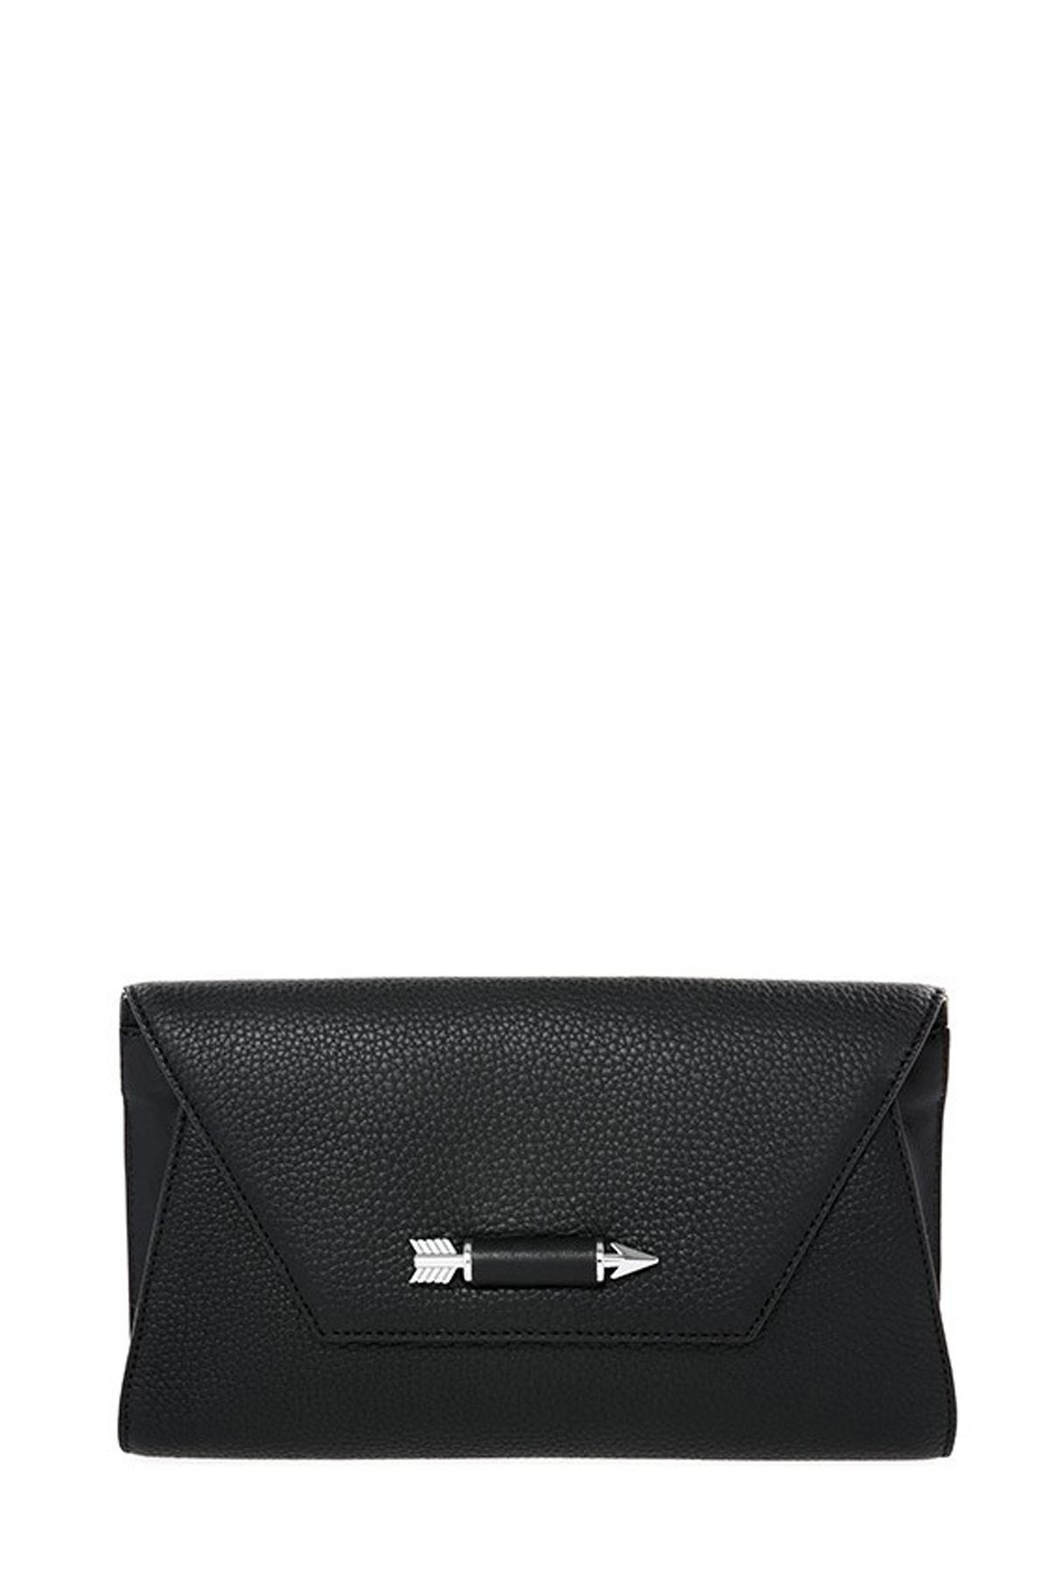 Mackage Flex Leather Clutch - Main Image